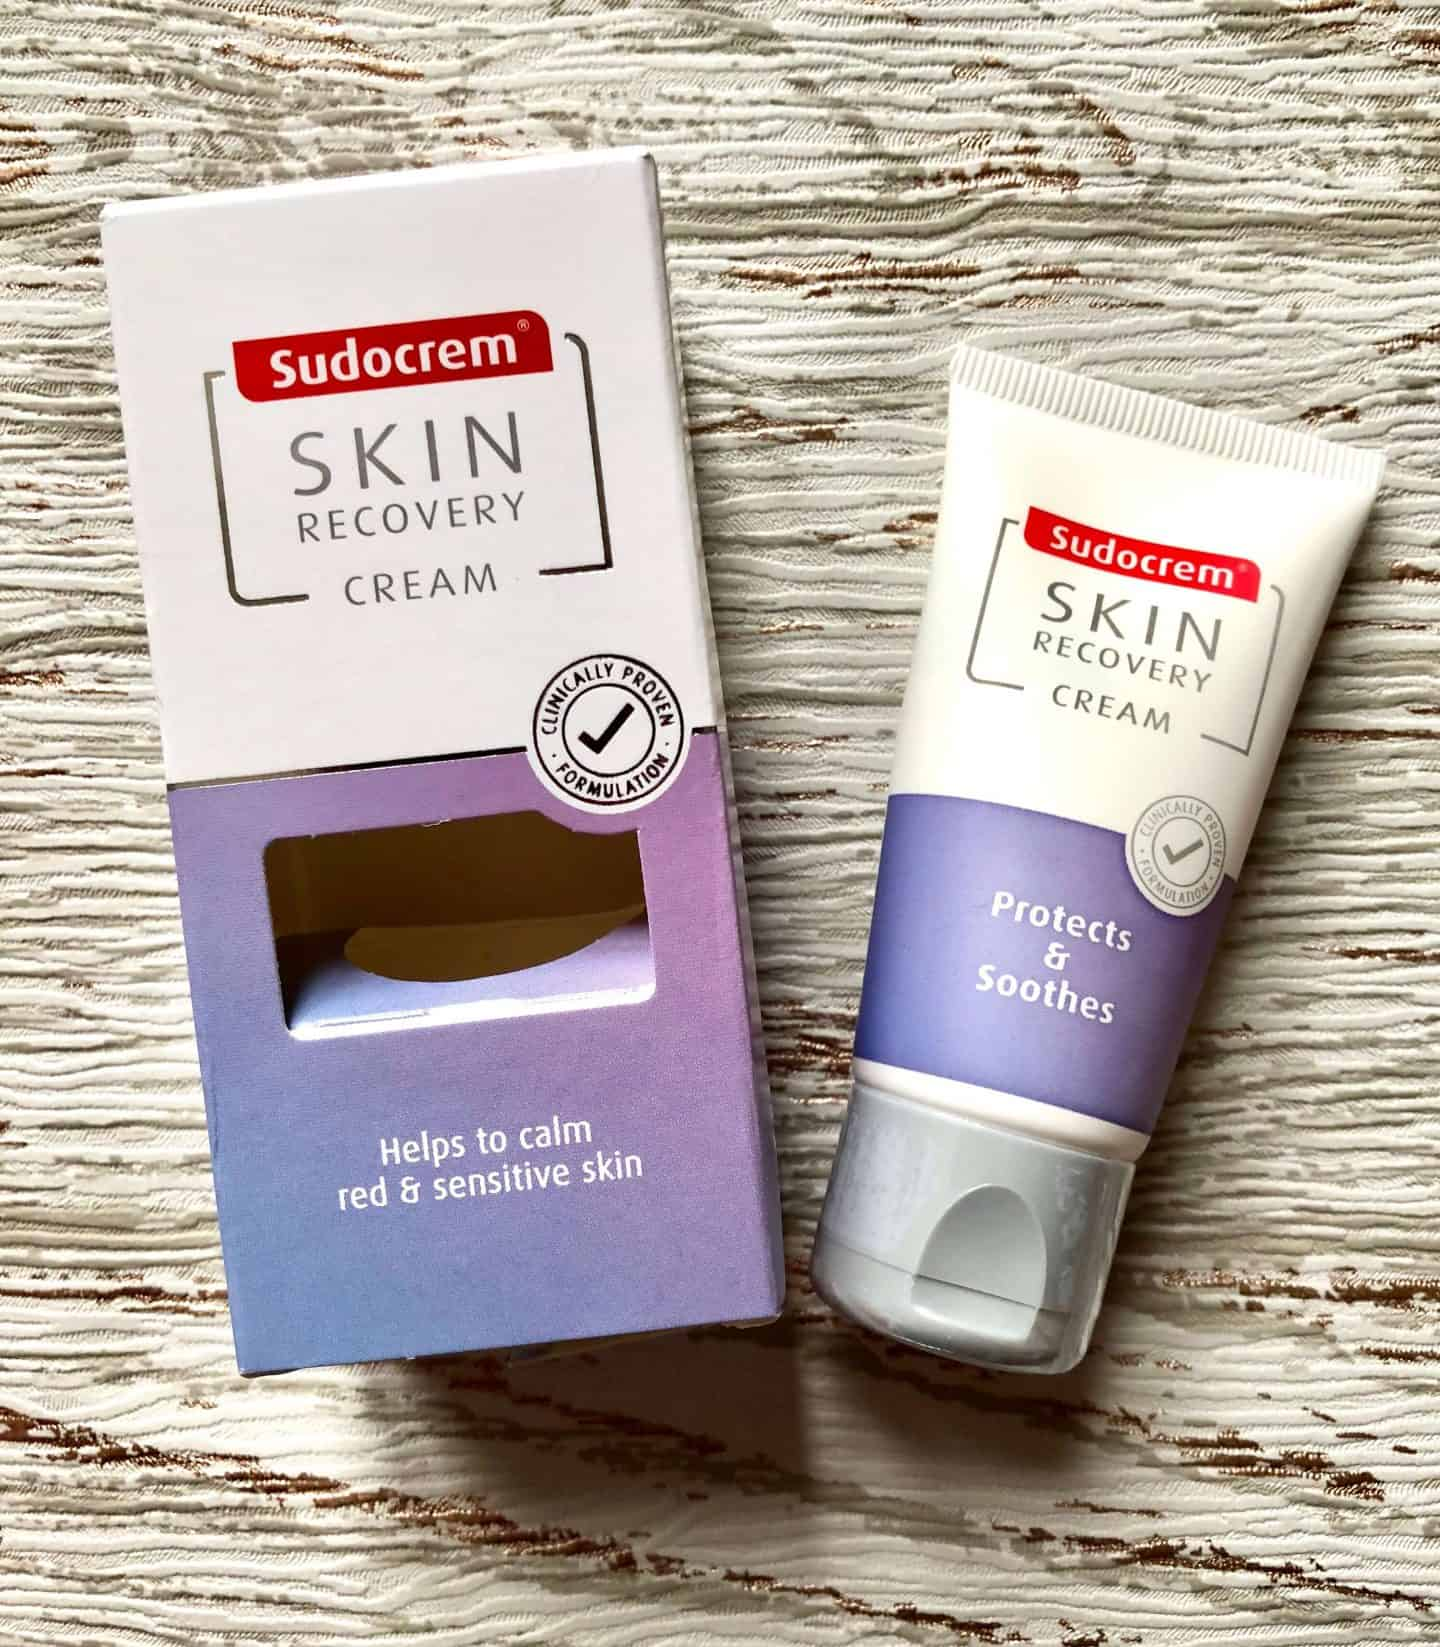 Sudocrem's Skin Recovery Cream